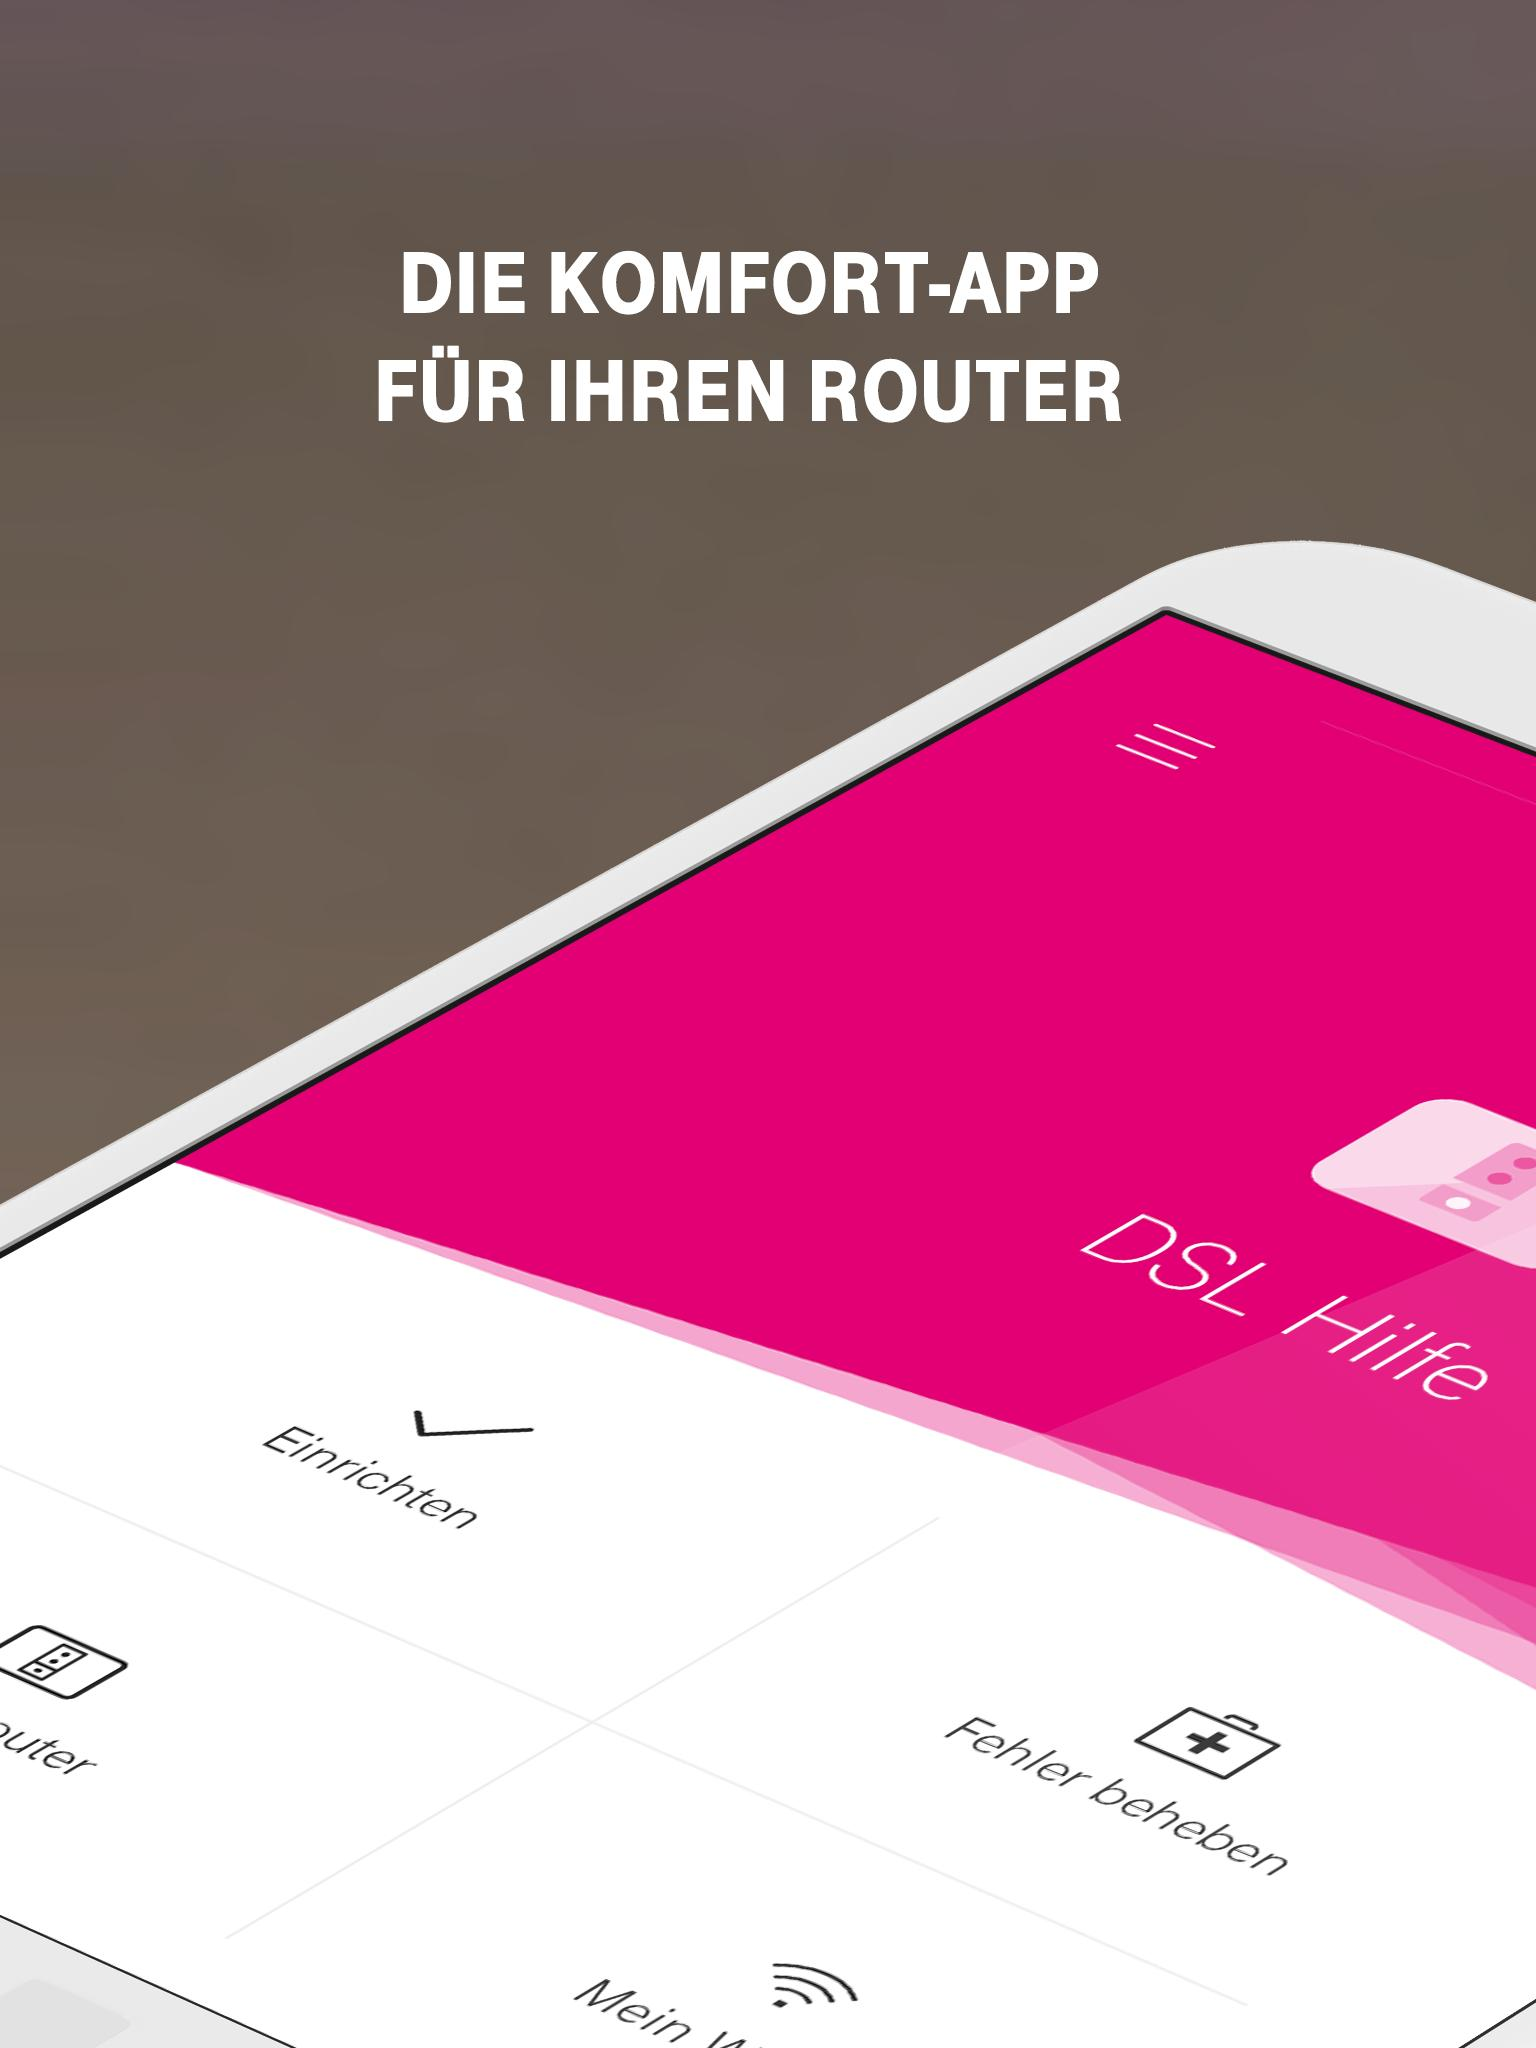 DSL Hilfe for Android - APK Download